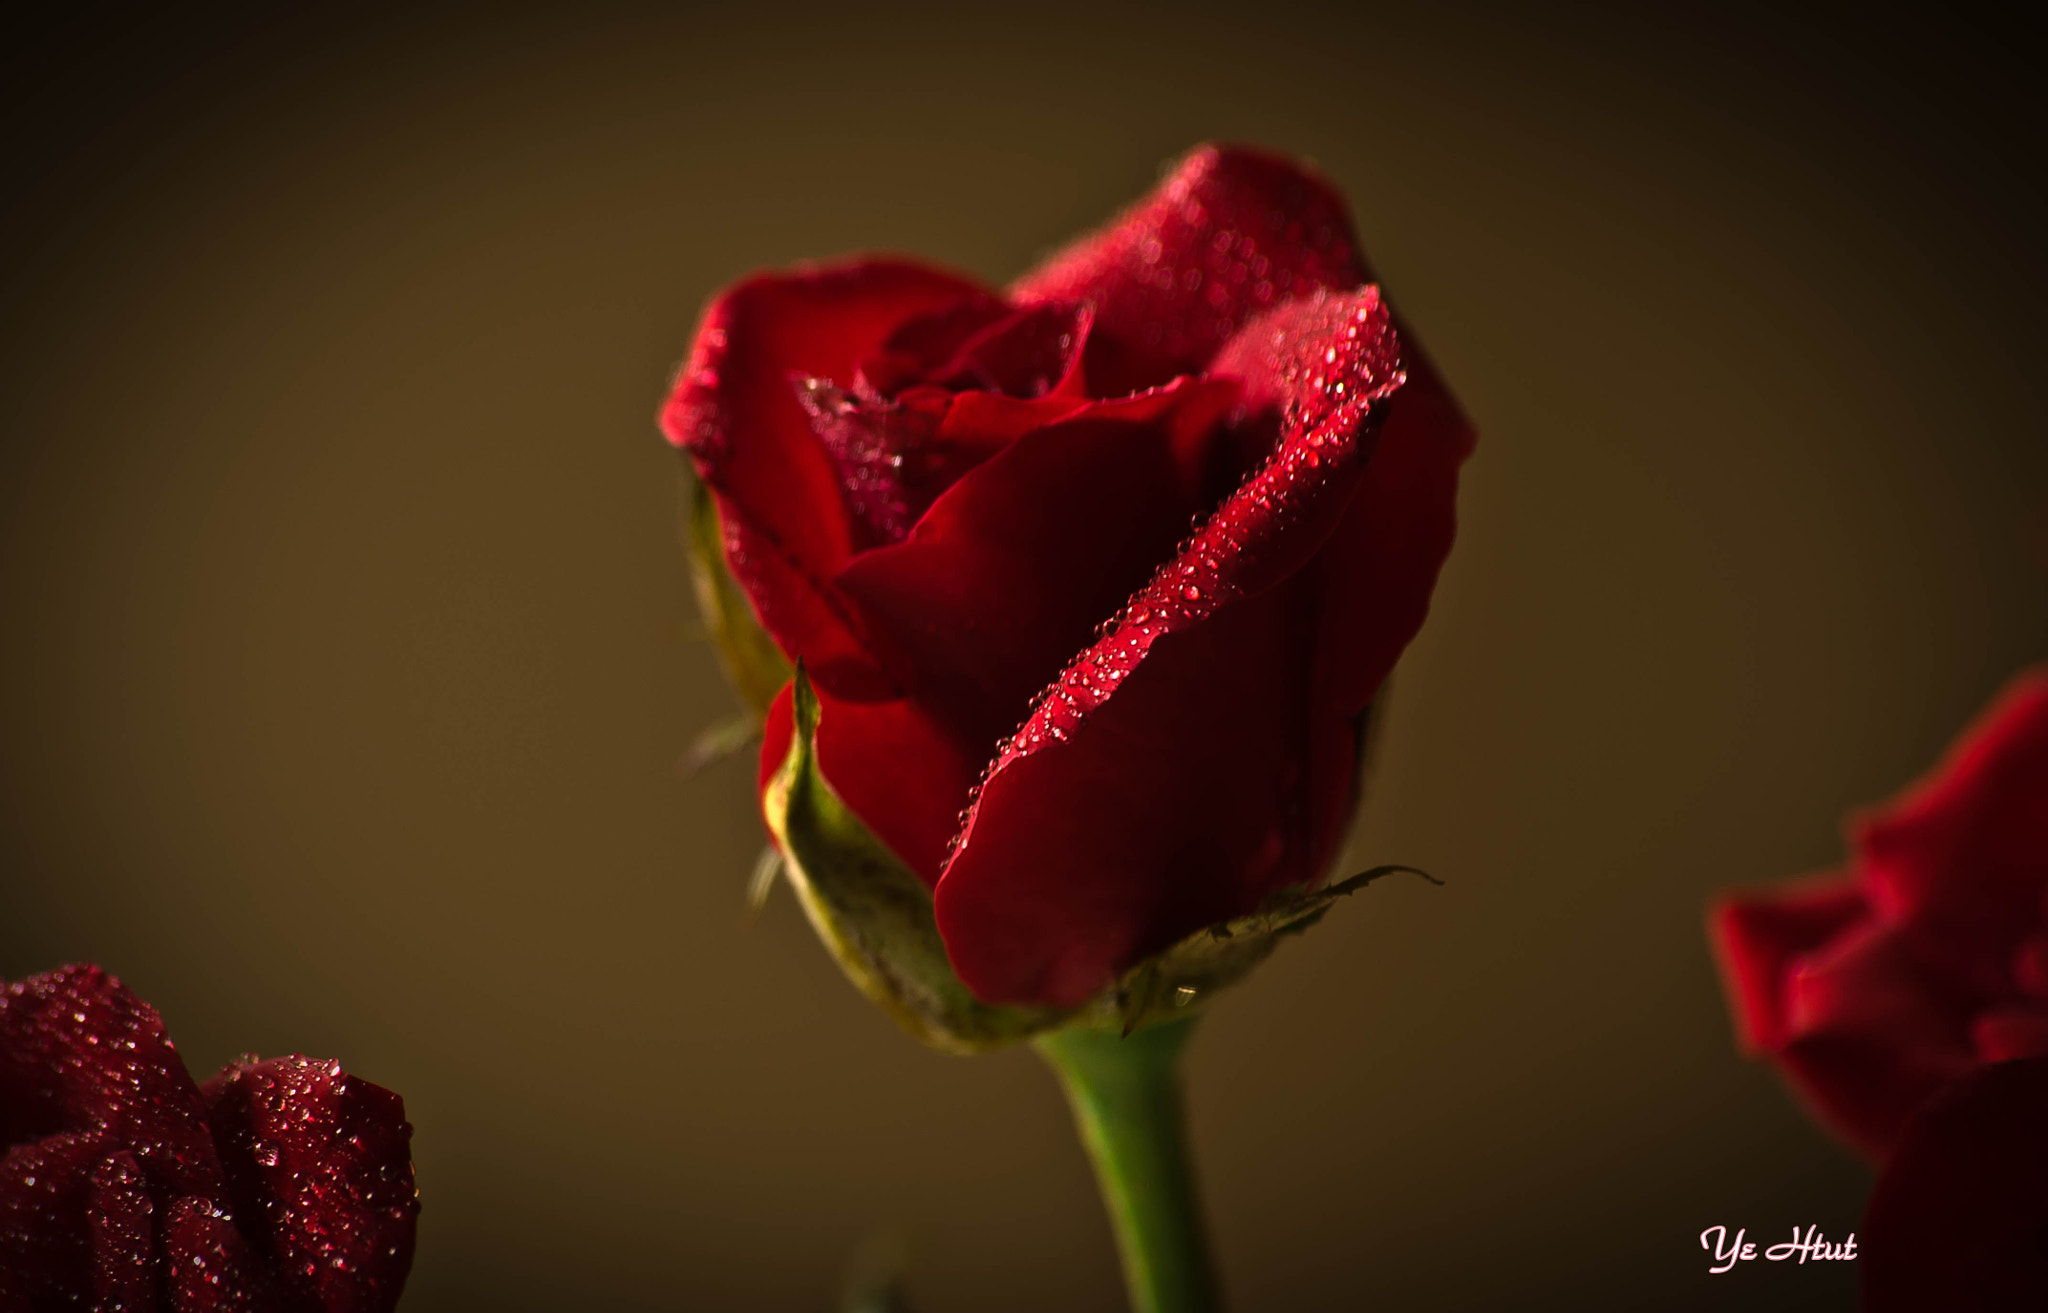 Photograph ROSE  by Ye Htut on 500px